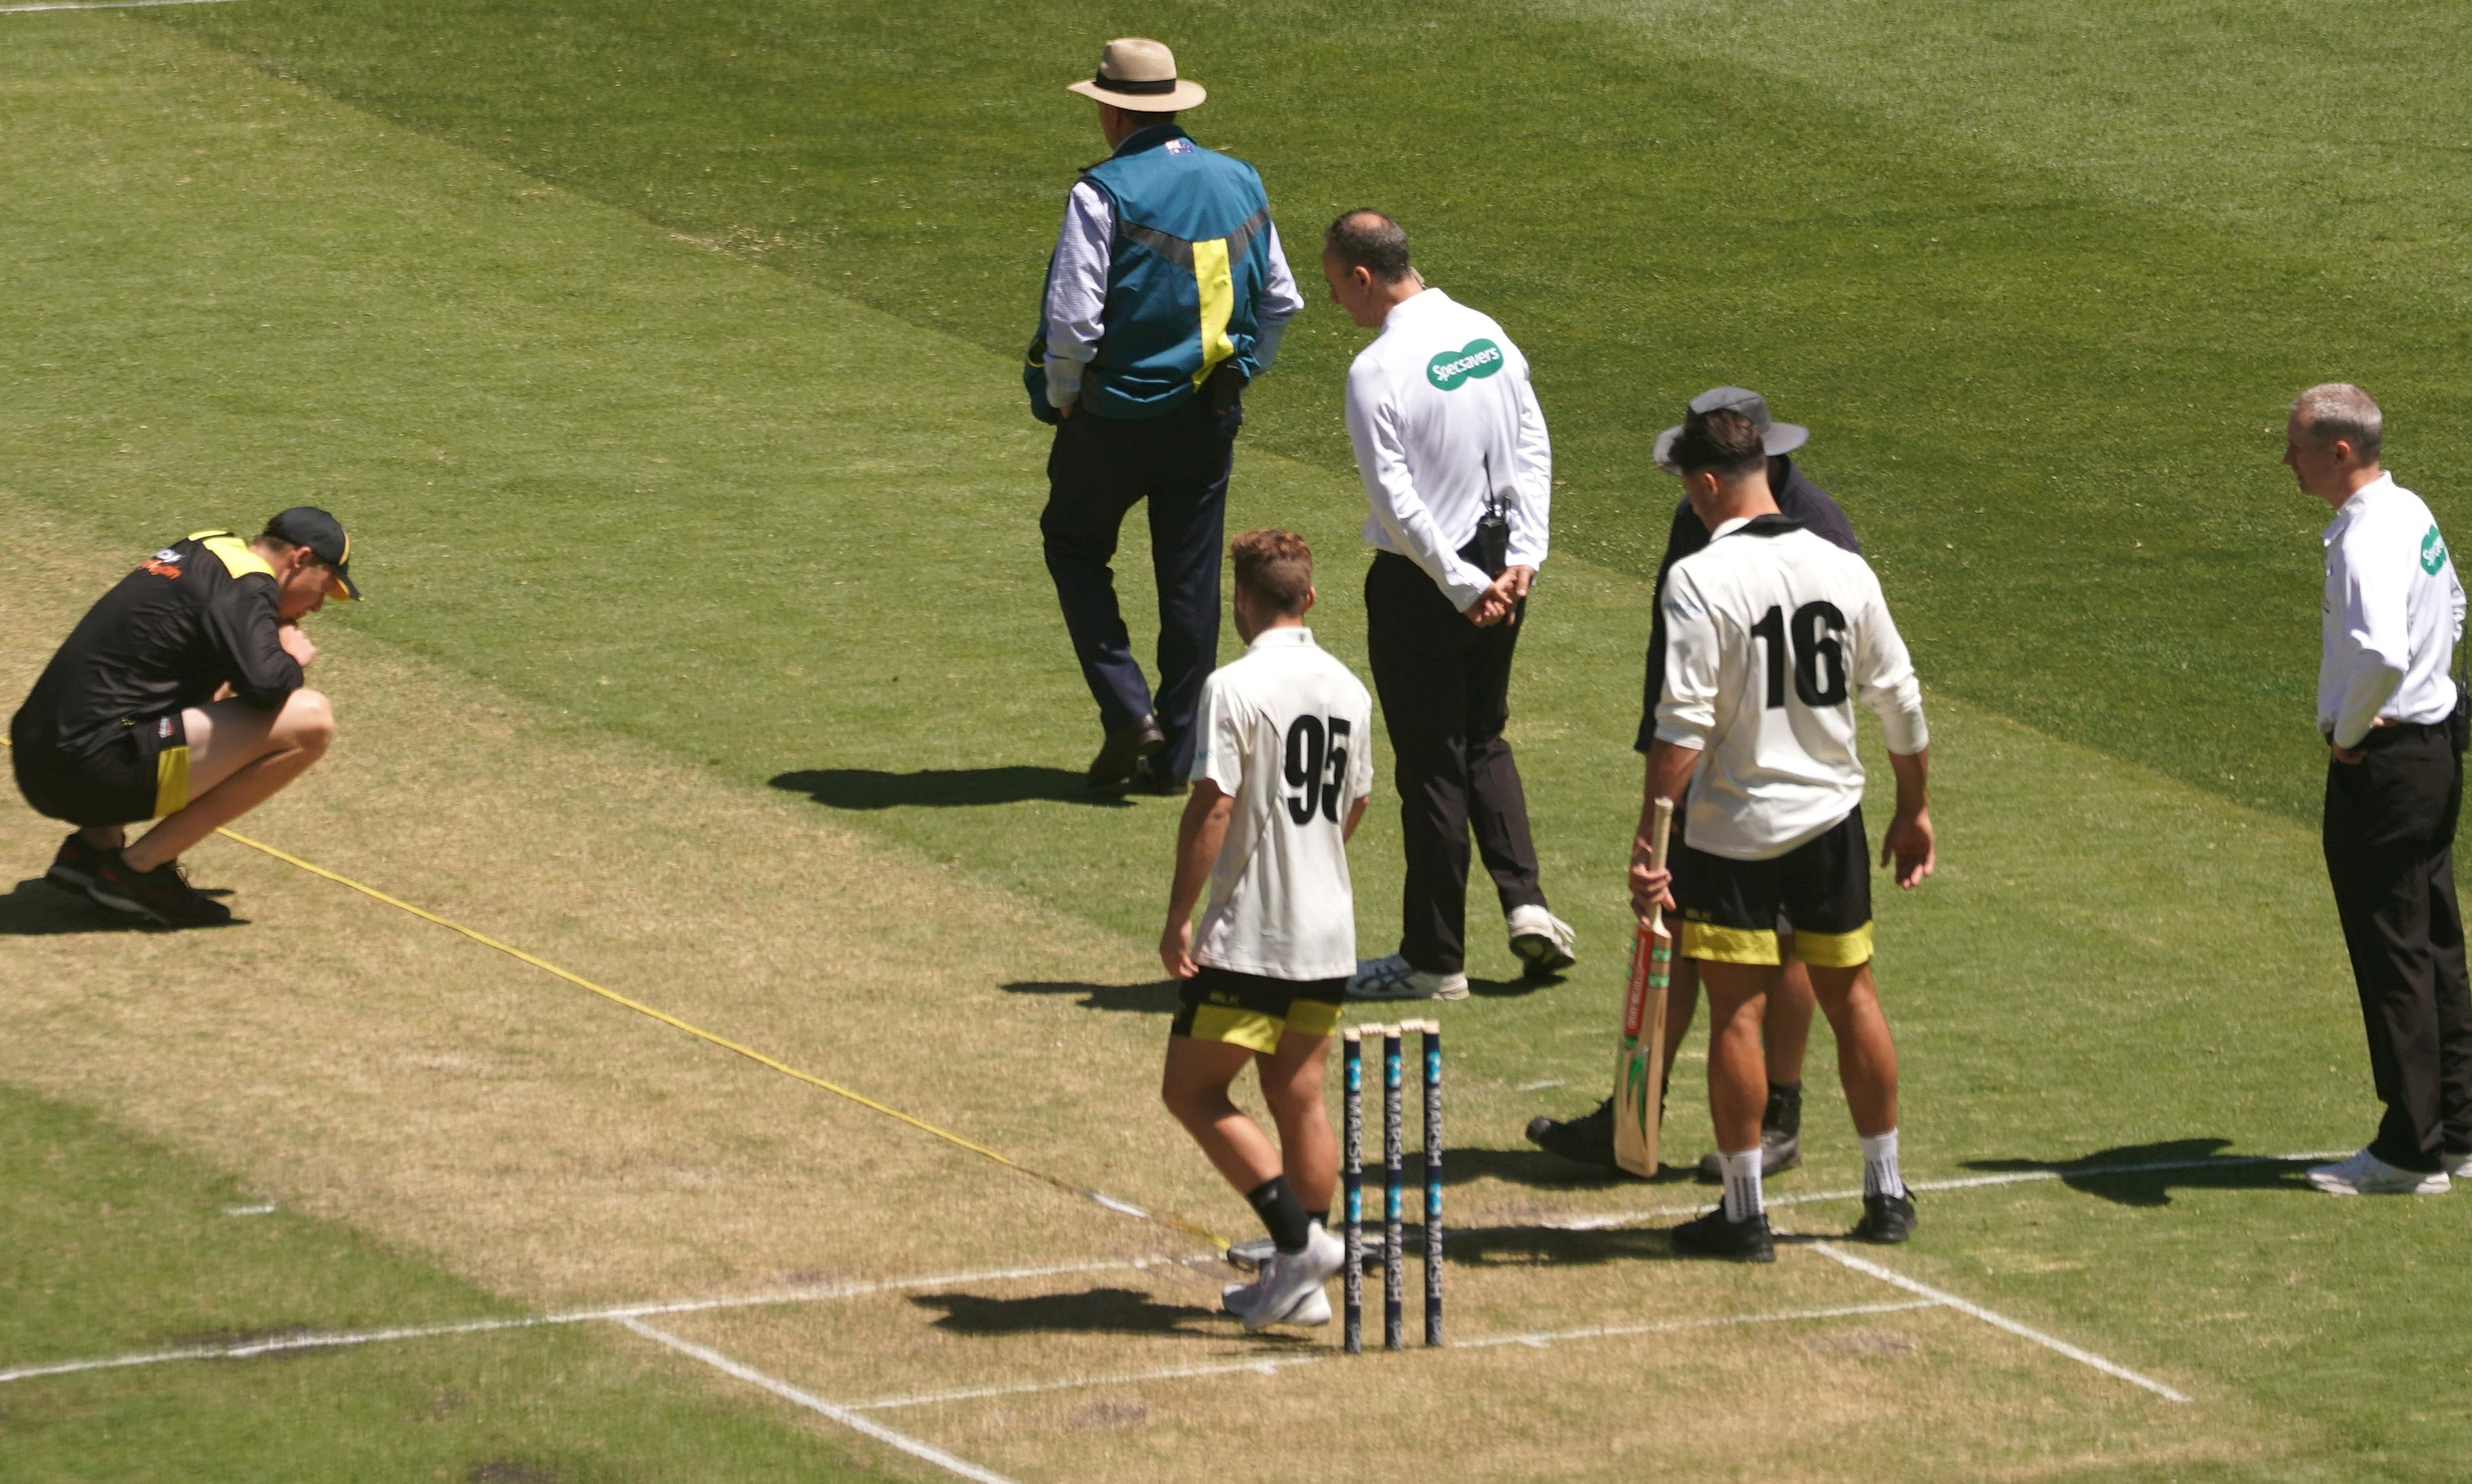 Dangerous MCG pitch forces play to be abandoned in Sheffield Shield match